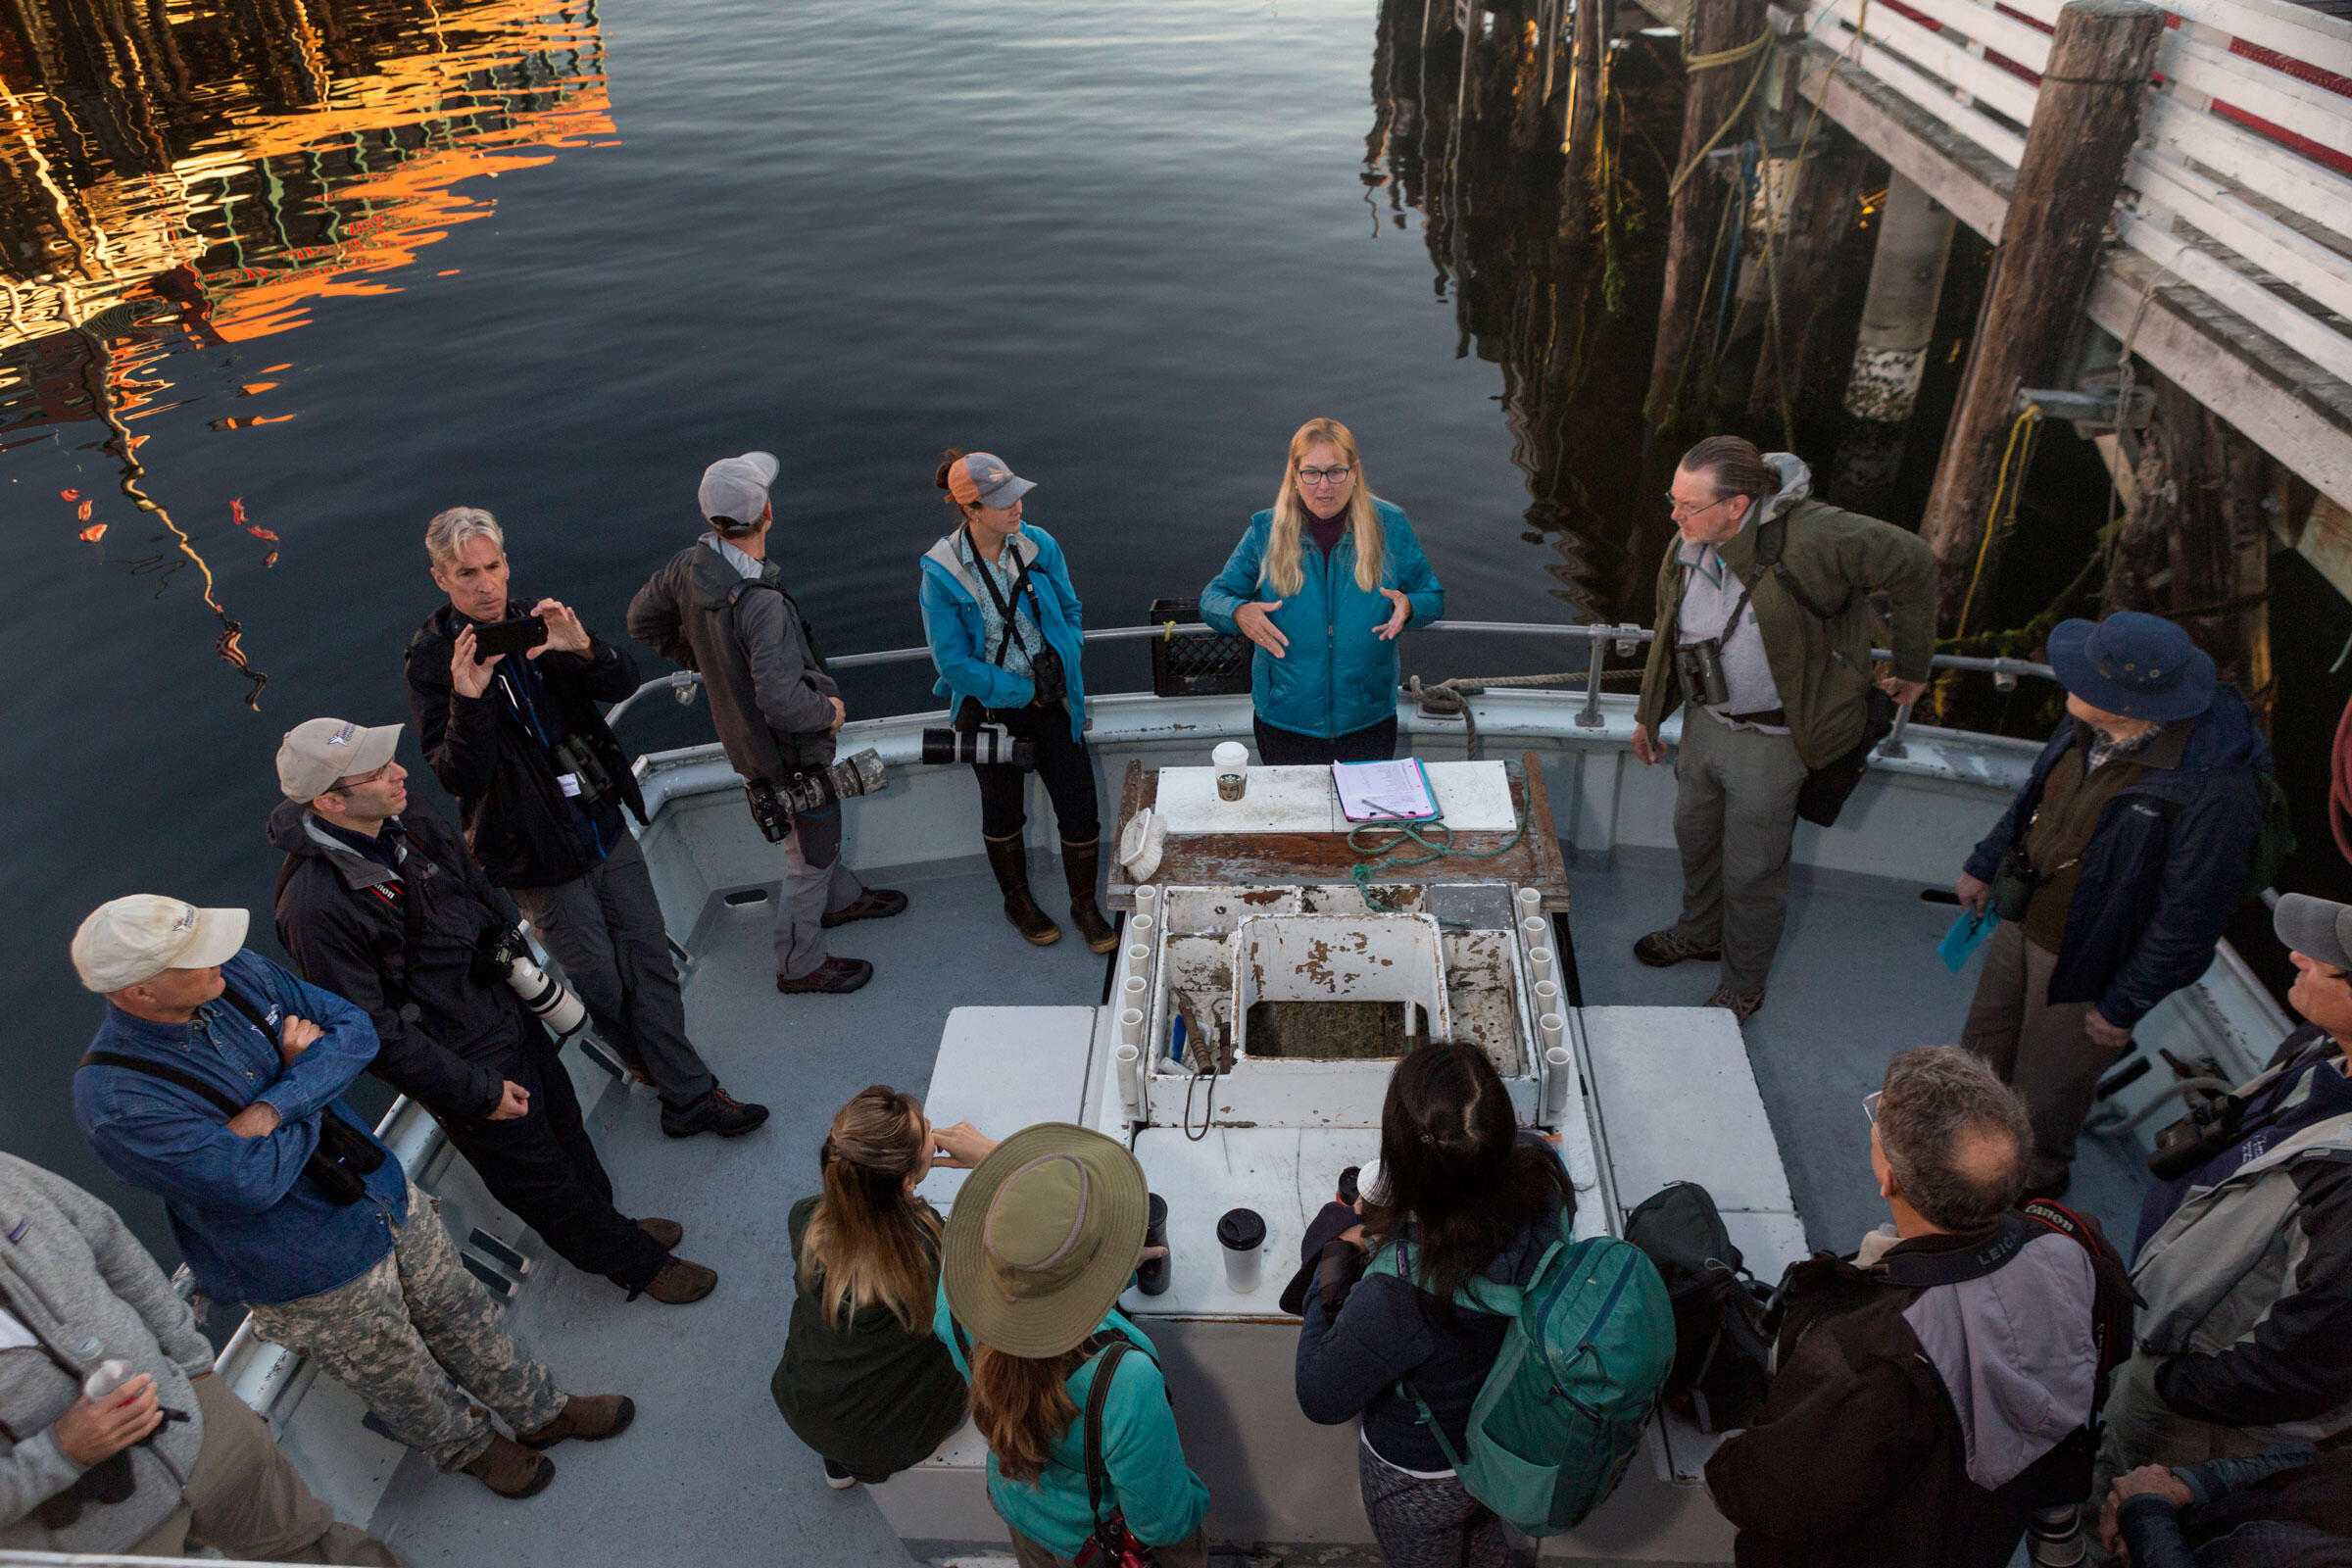 Shearwater gives an introduction and safety talk to a group of birding enthusiasts. Lauren Owens Lambert